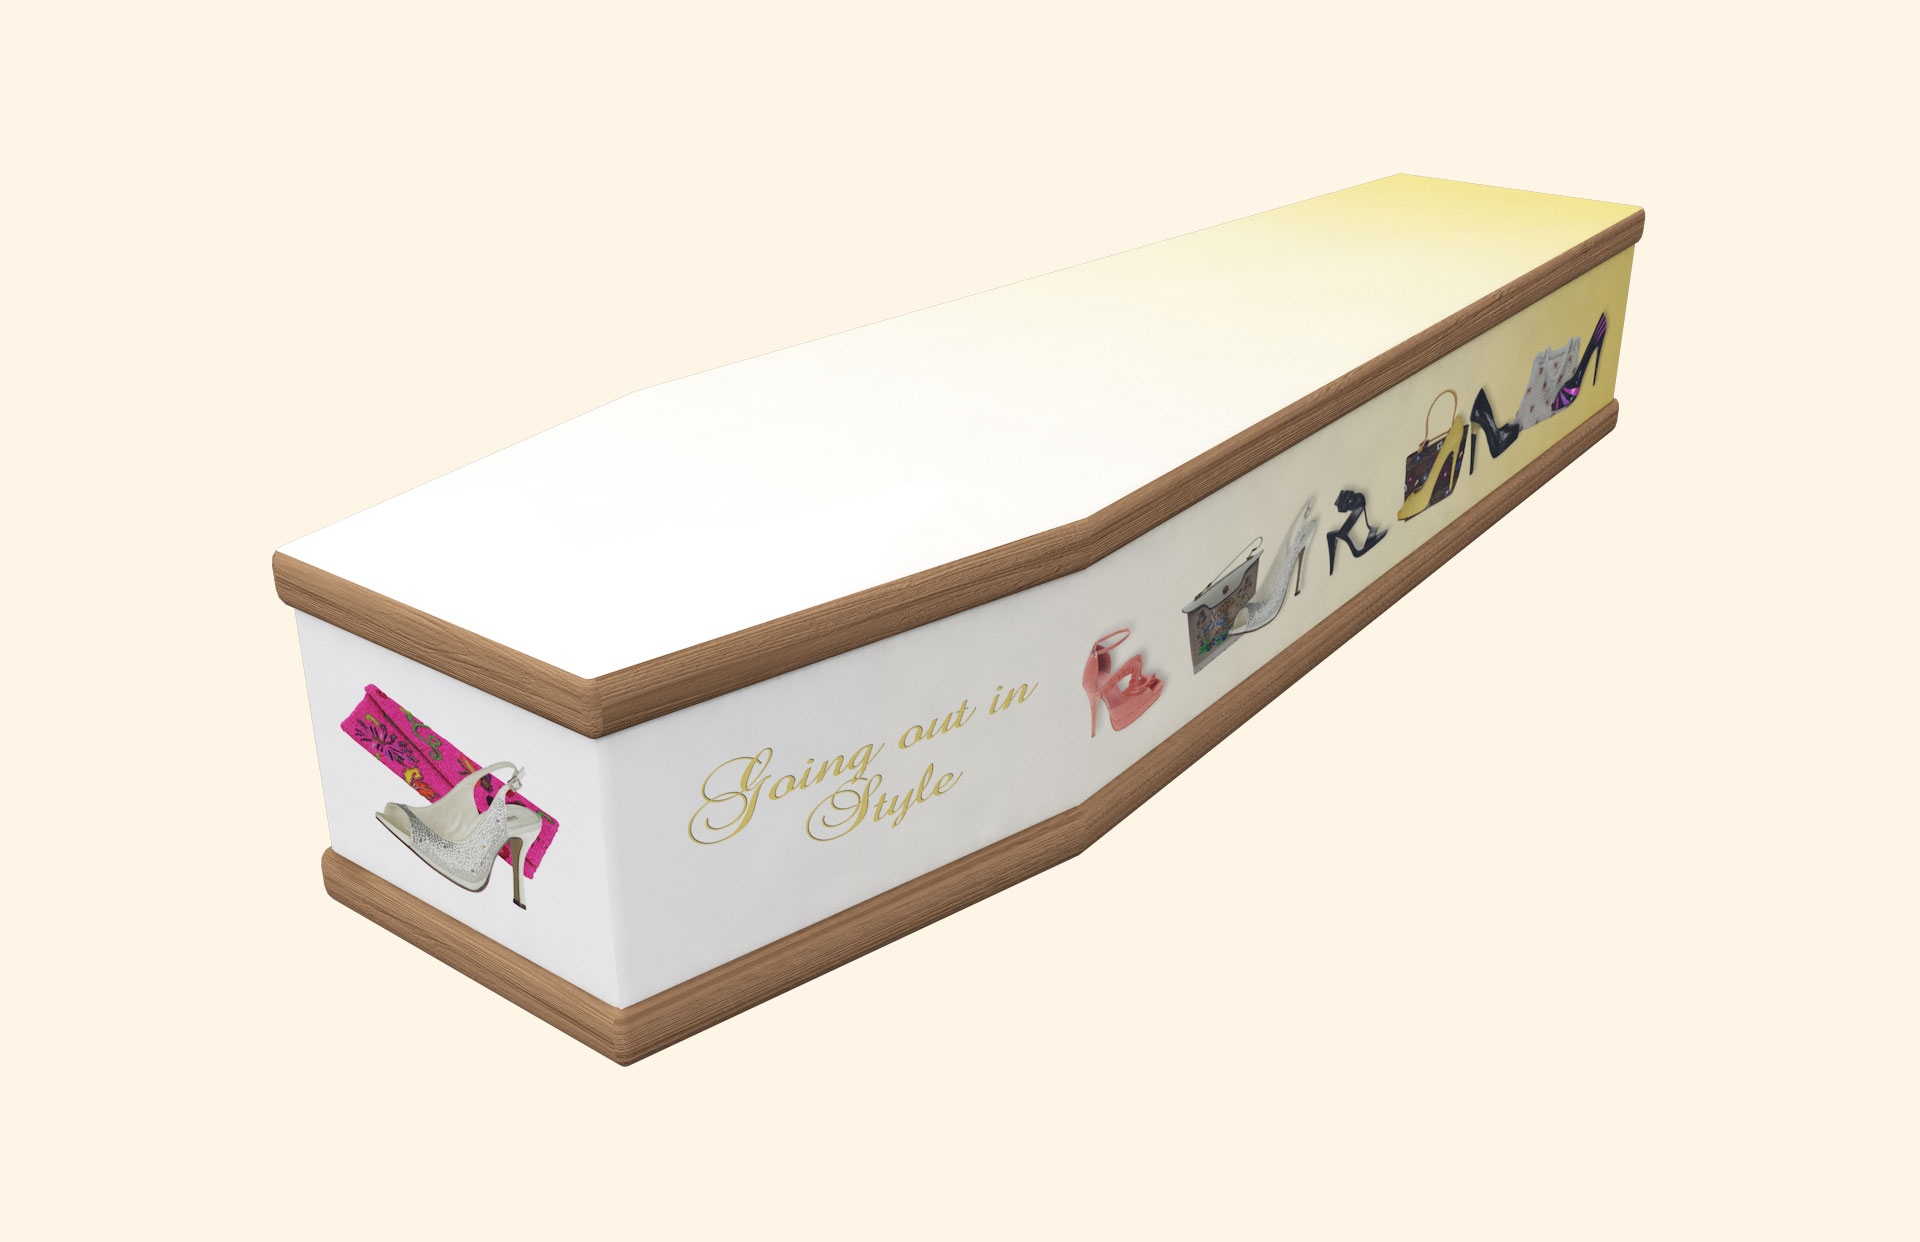 Going out in Style gold Classic coffin